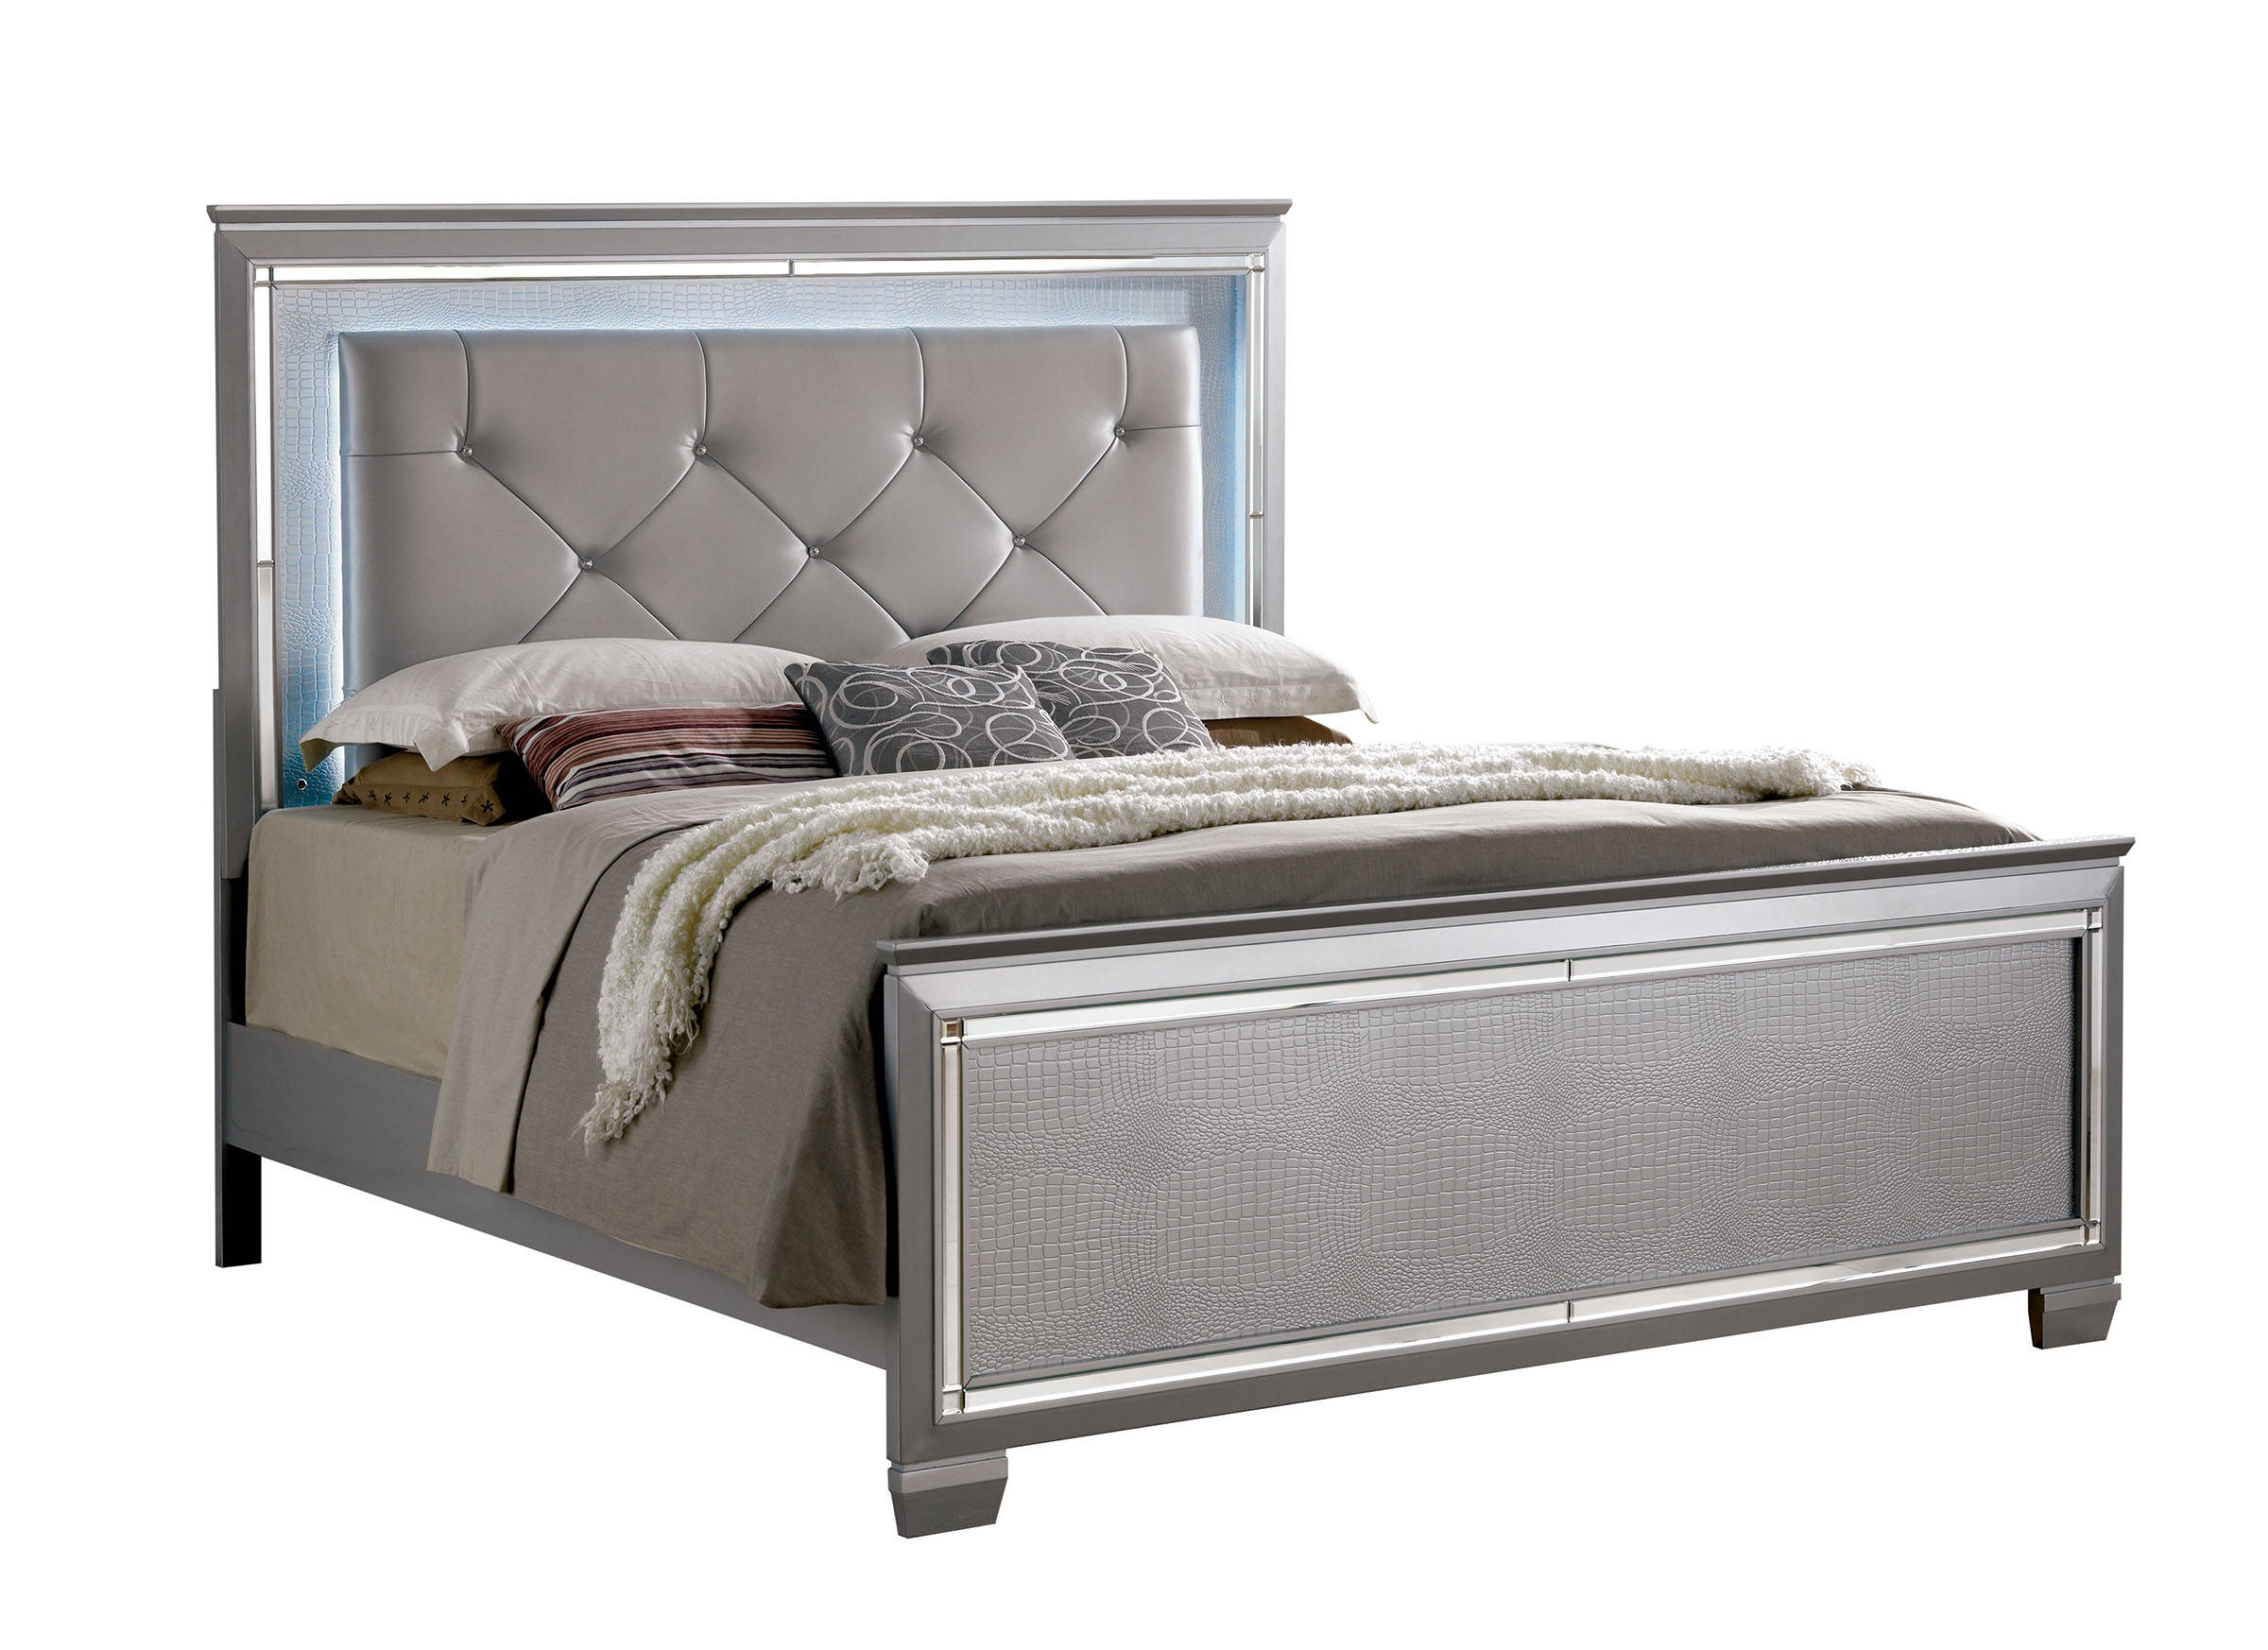 Furniture of america bellanova silver cal king bed the for Furniture of america king bed